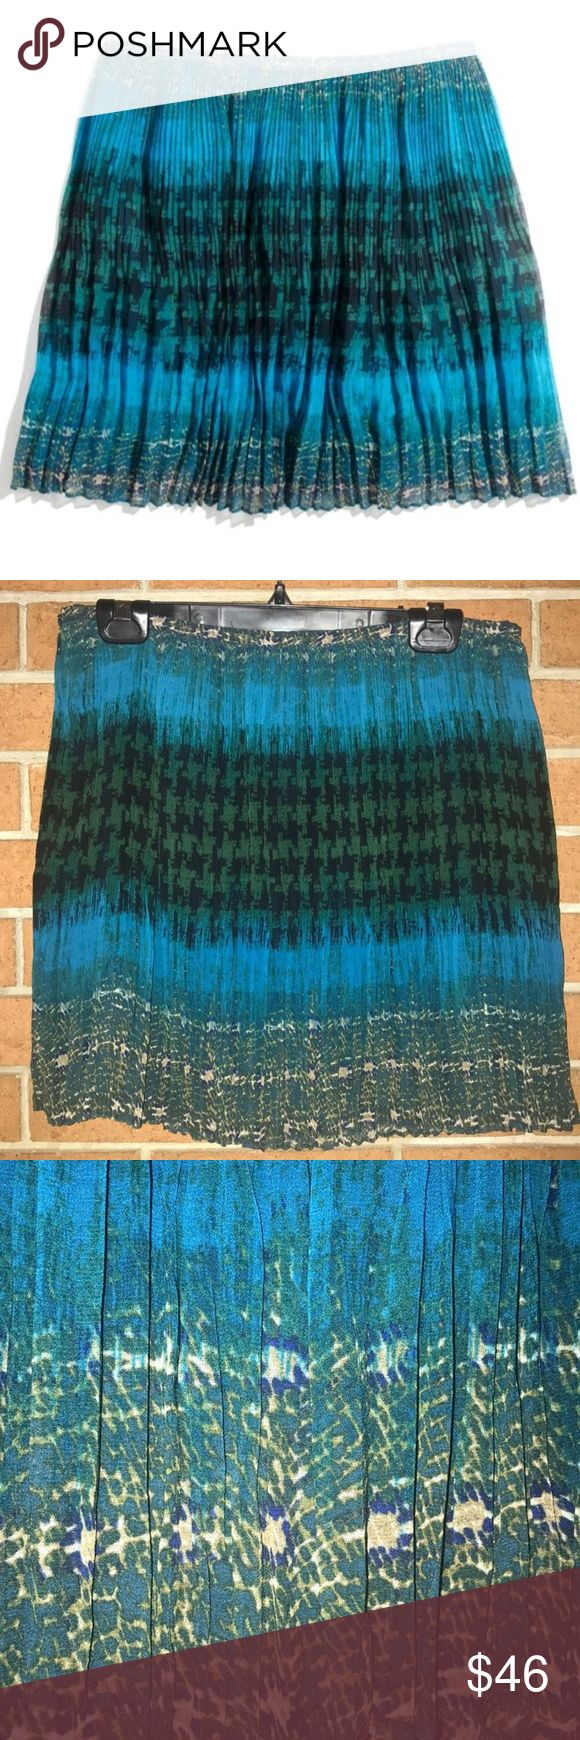 """✳️MADEWELL✳️MULTI-PRINTED PLEATED SKIRT✳️ This is a beautiful multi-print pleated mini skirt by Broadway & Broome from Madewell. Fully lined side zipping with Eye and hook closure. Measurements taken flat Waist 15"""" hips free length 16"""" Colors include turquoise black tan and green 🧚🏻♀️MADEWELL🧚🏻♀️ MULTI-PRINTED PLEATED SKIRT Madewell Skirts Mini"""